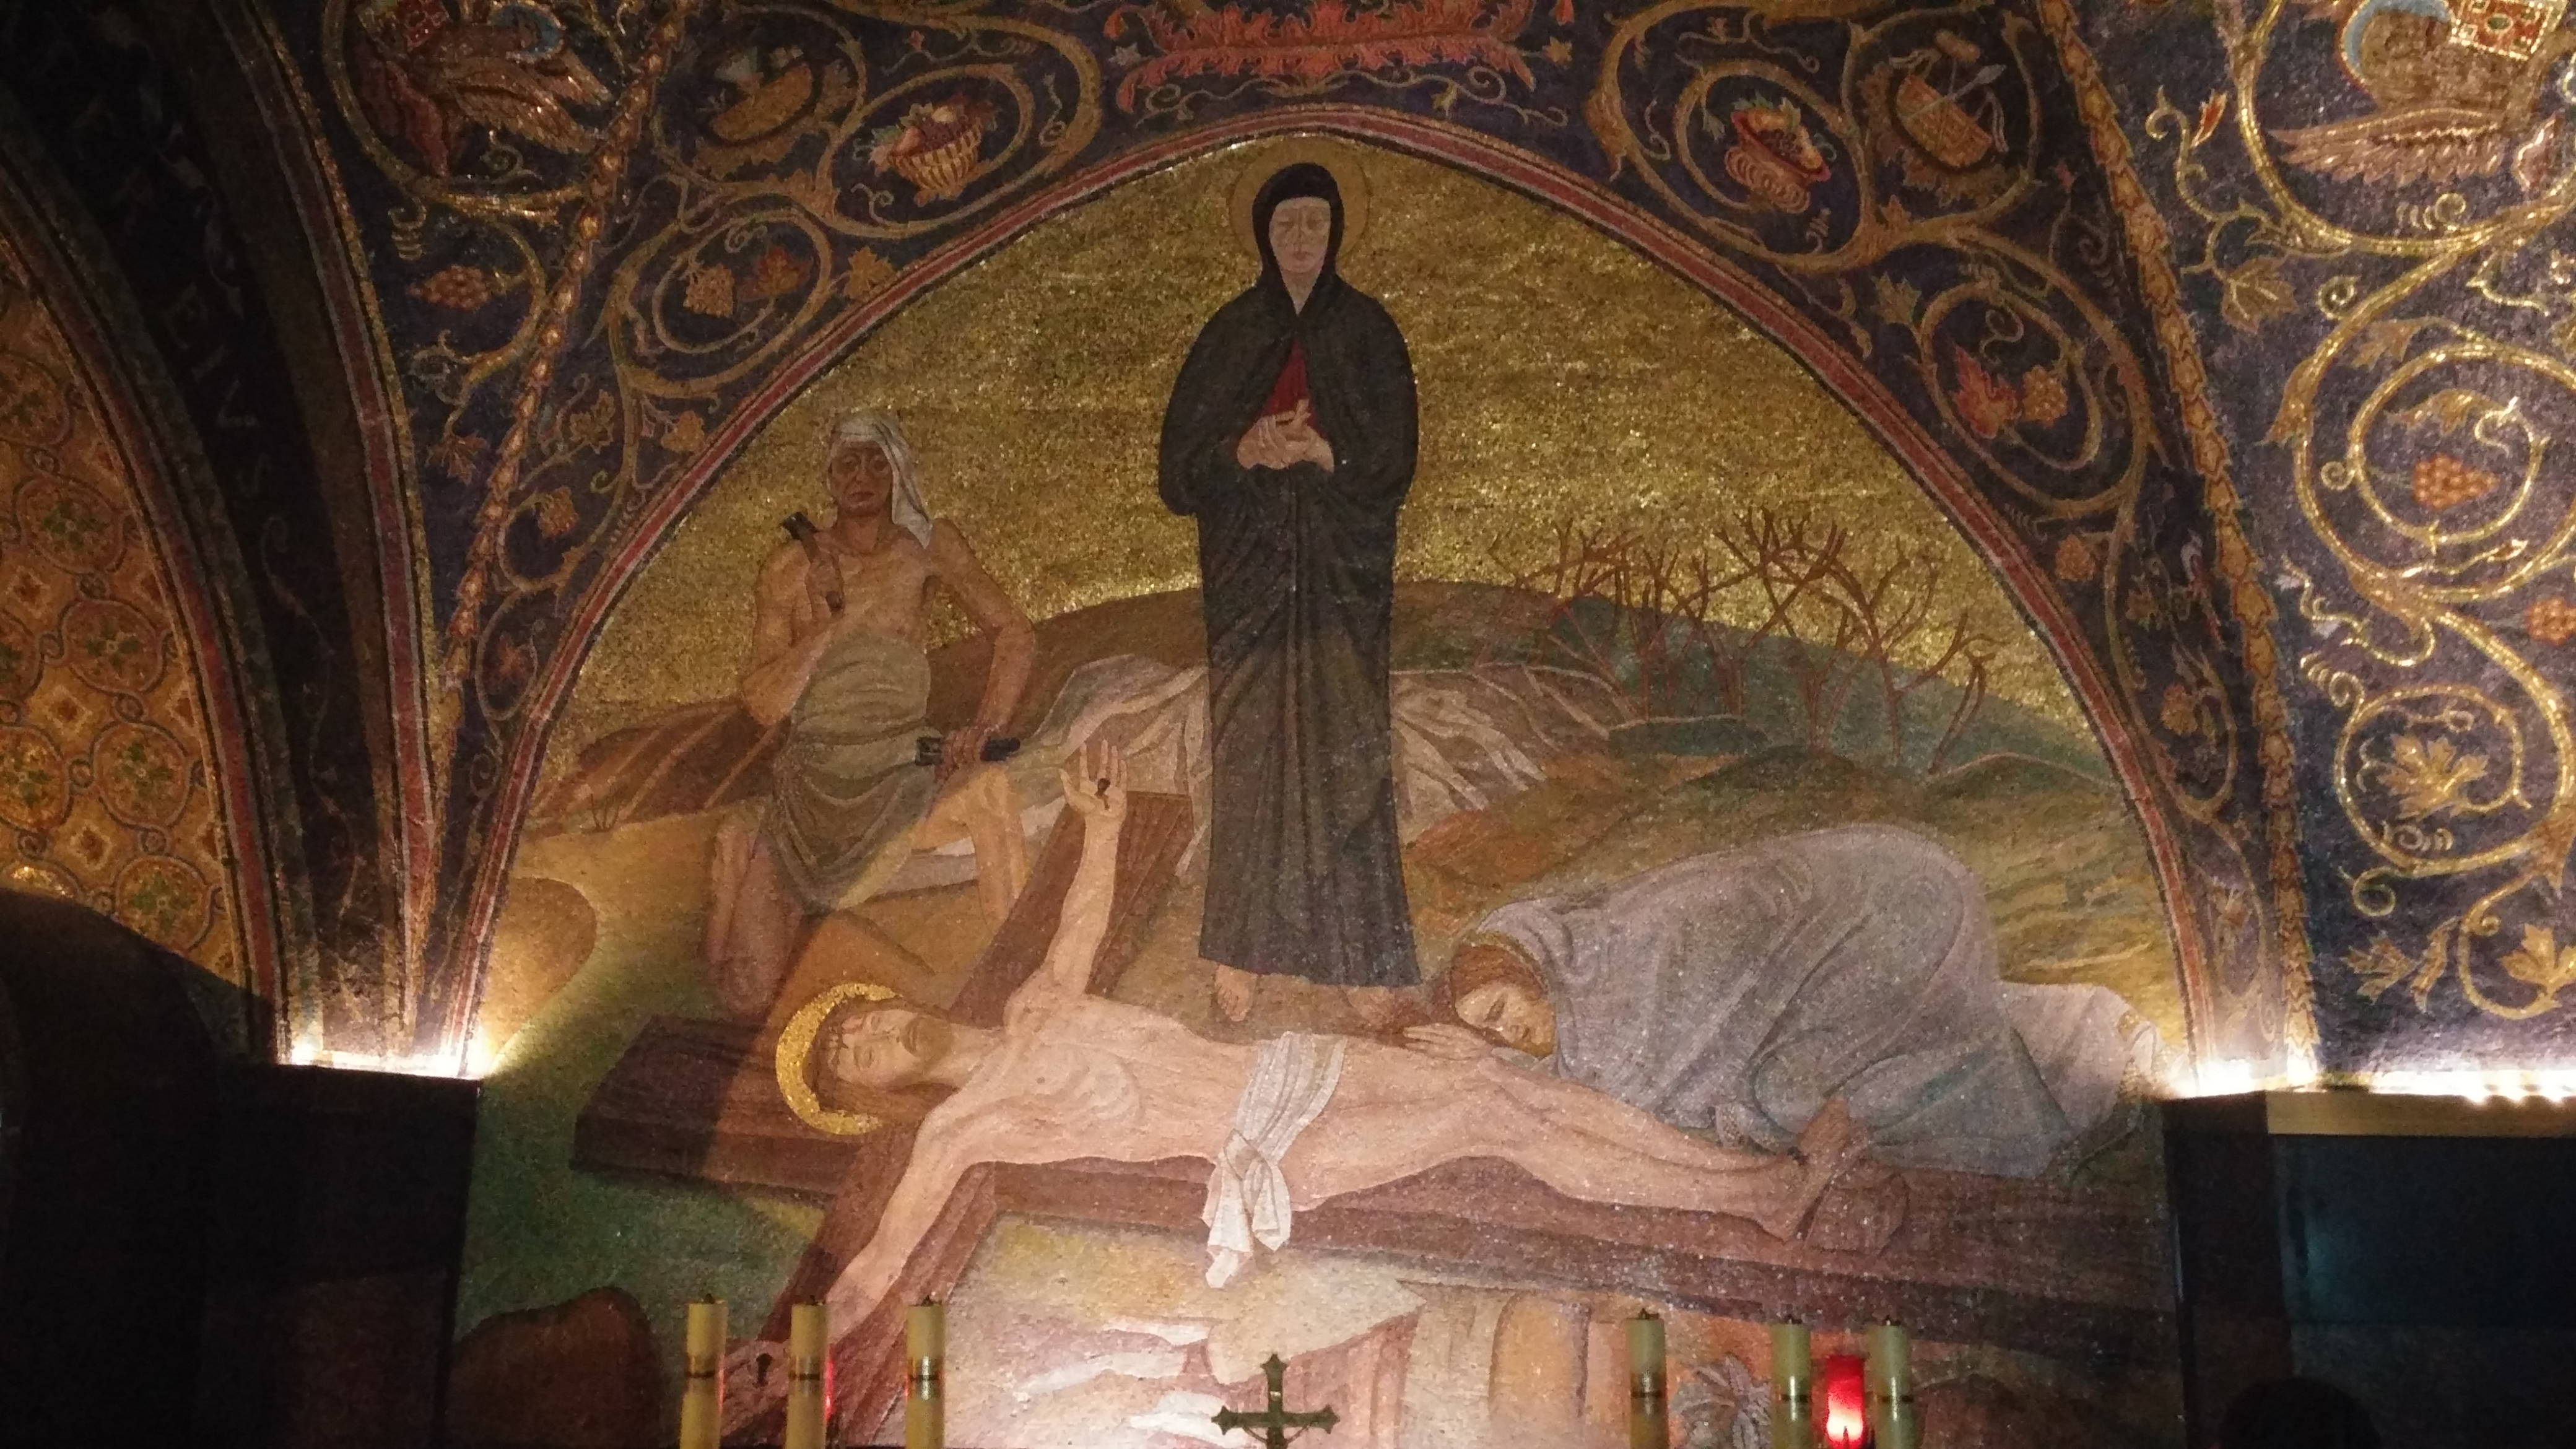 Mosaic of Jesus nailed to the cross (Holy Sepulchre, Jerusalem) Photo ©2017 Sarah Christmyer. All rights reserved.